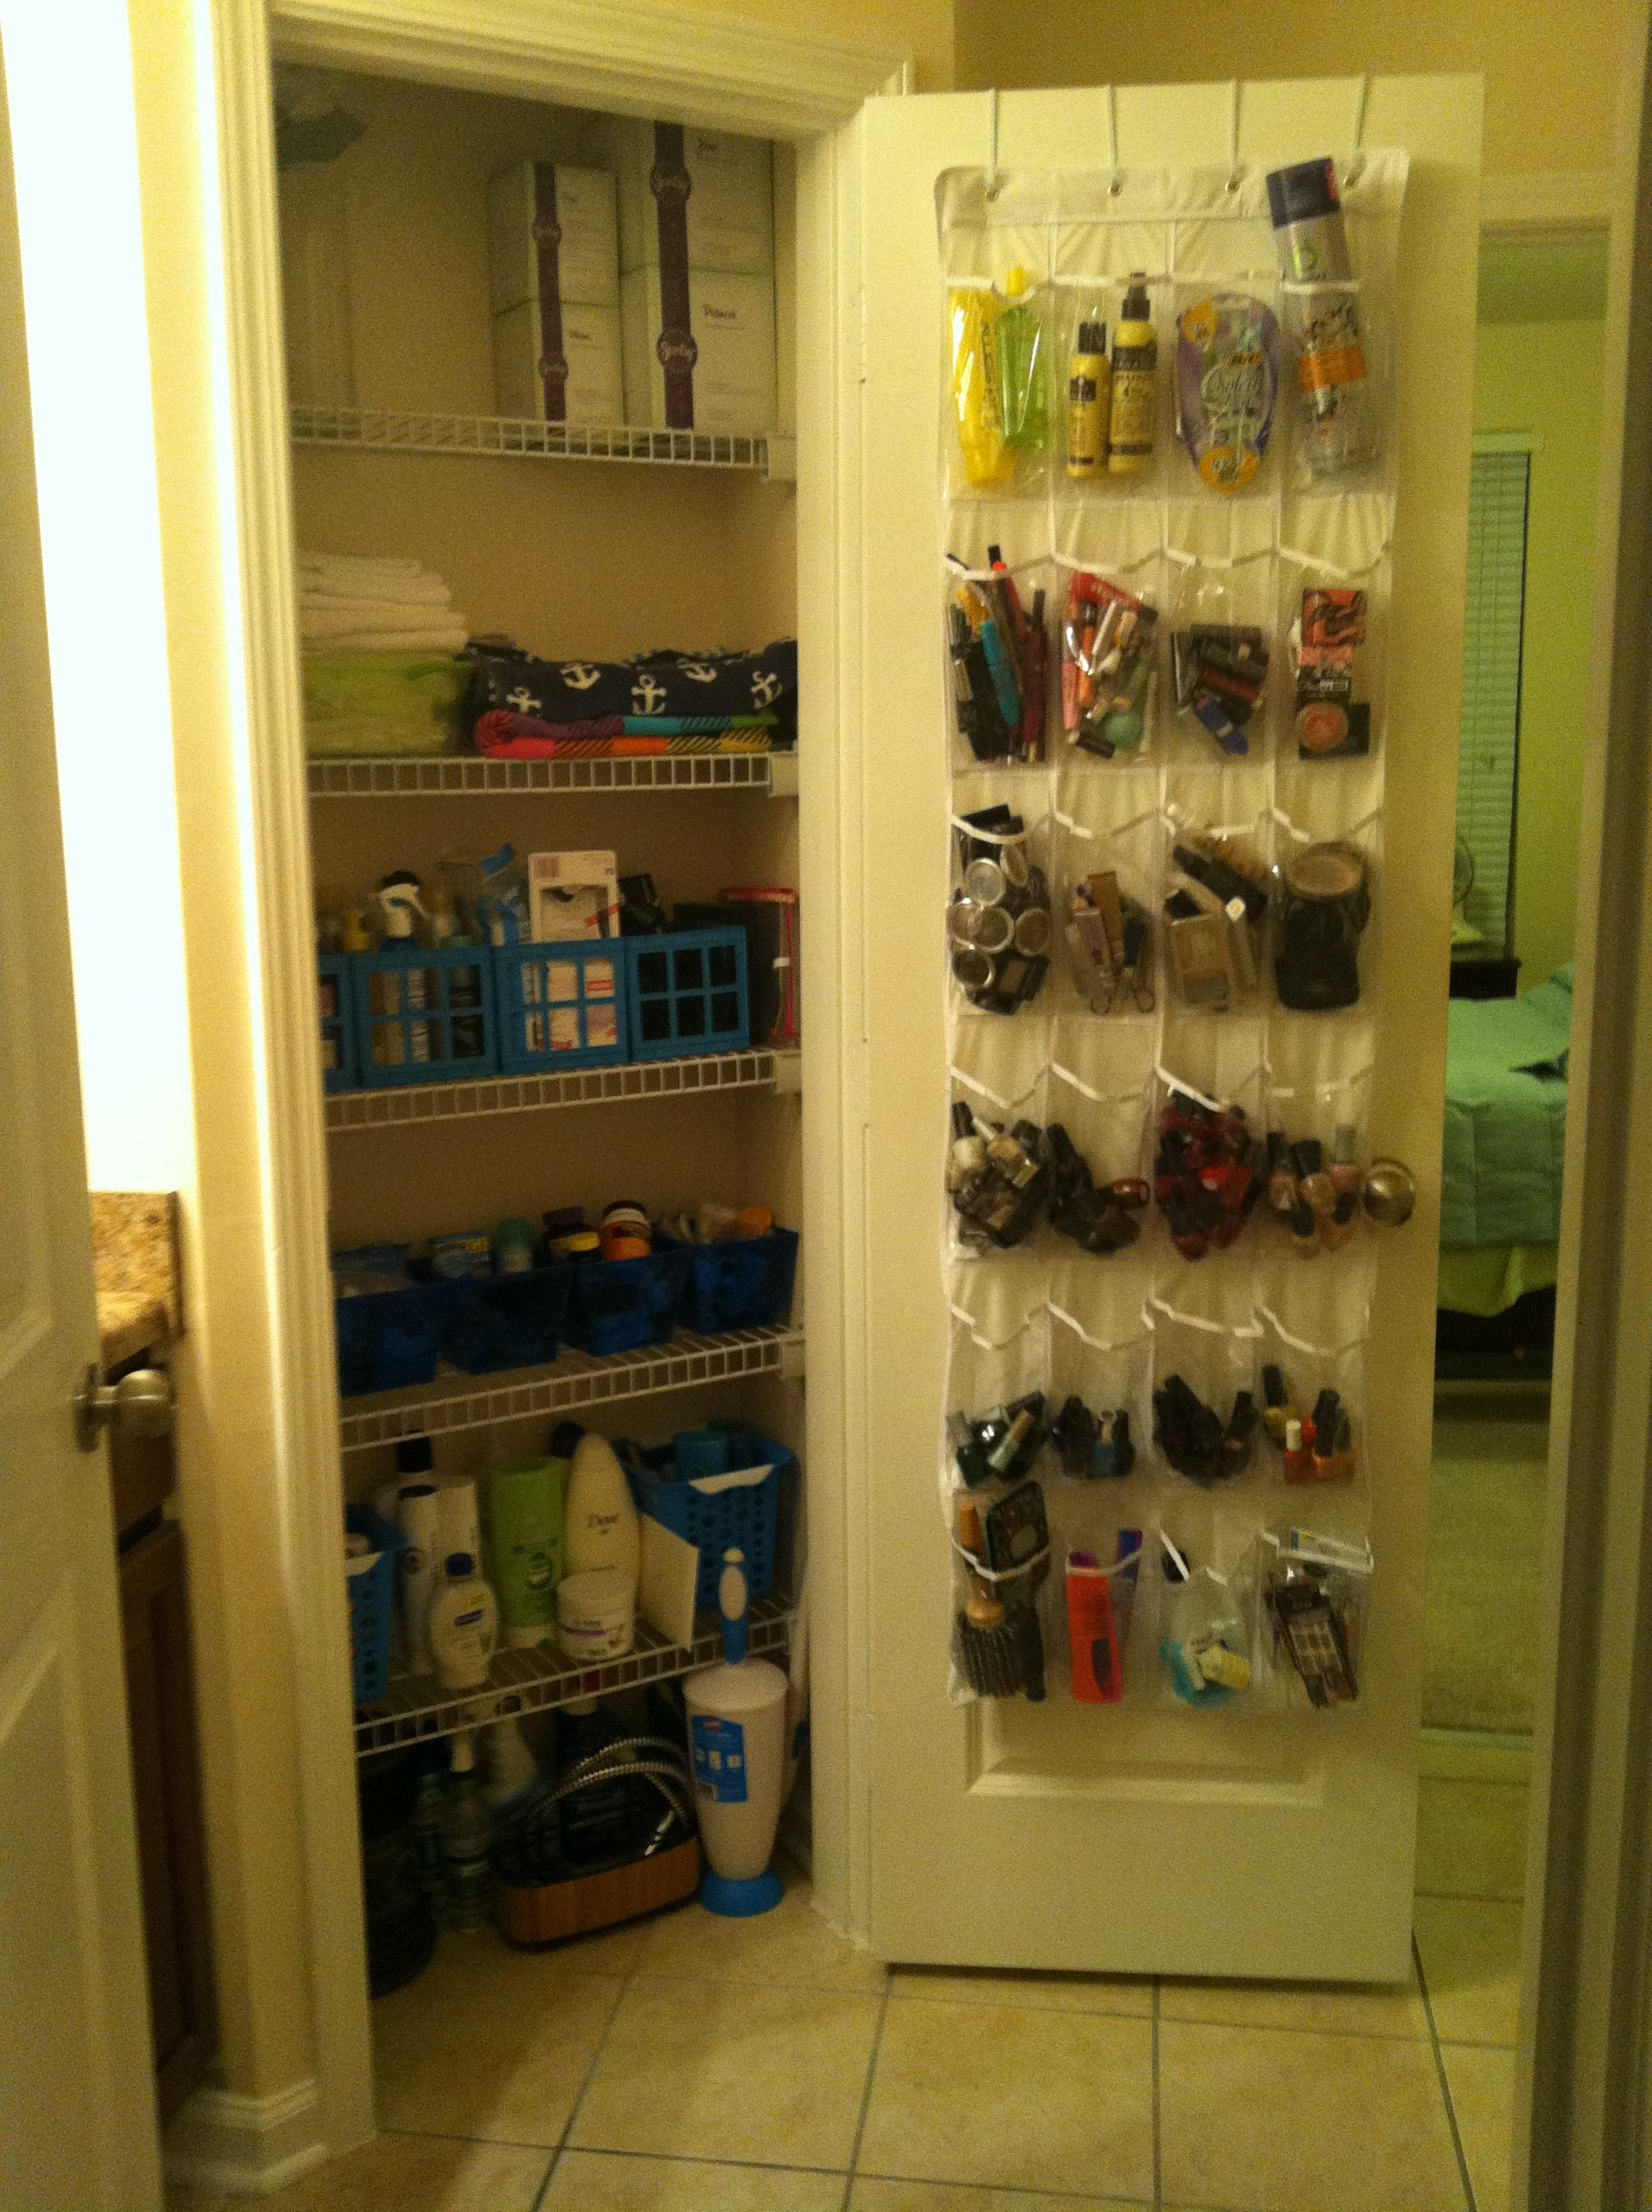 Visible organization shoe organizerwalmart binscratesthe